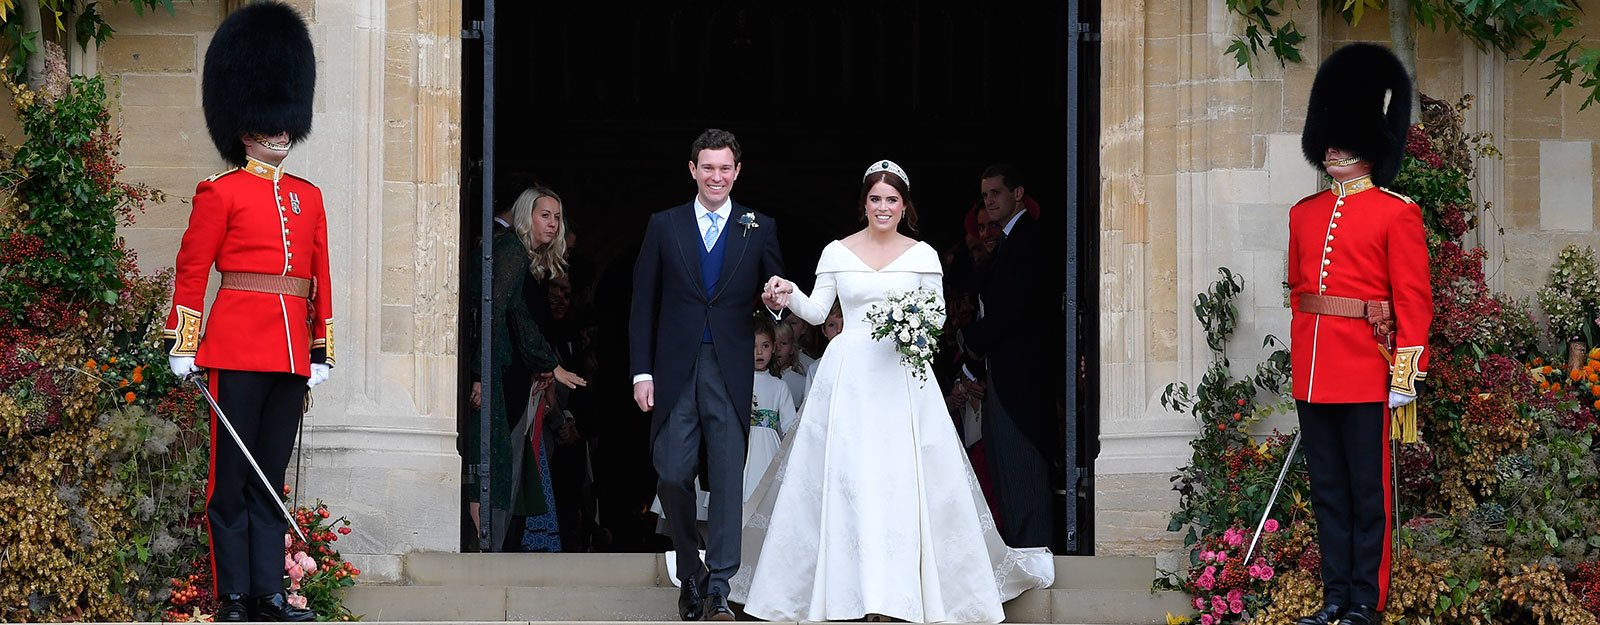 The wedding of Princess Eugenie and Mr Jack Brooksbank in St George's Chapel, Windsor Castle